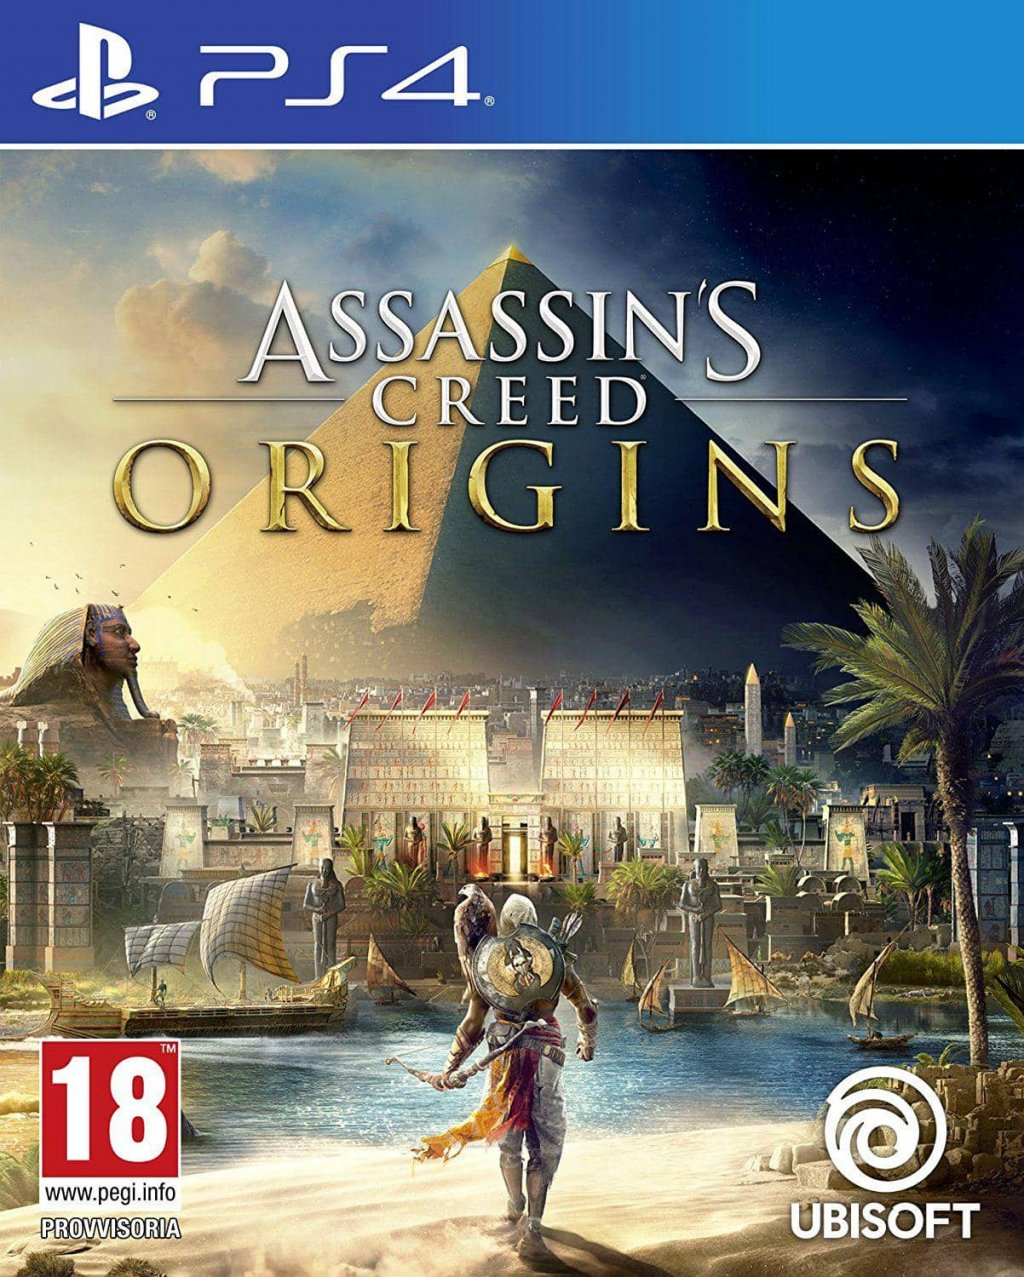 Jesi - Assassin's Creed Origins per PS4 a soli 39,99€ | Jungle Game | Jesi, Via Gramsci, 2 | Tel. 0731722023